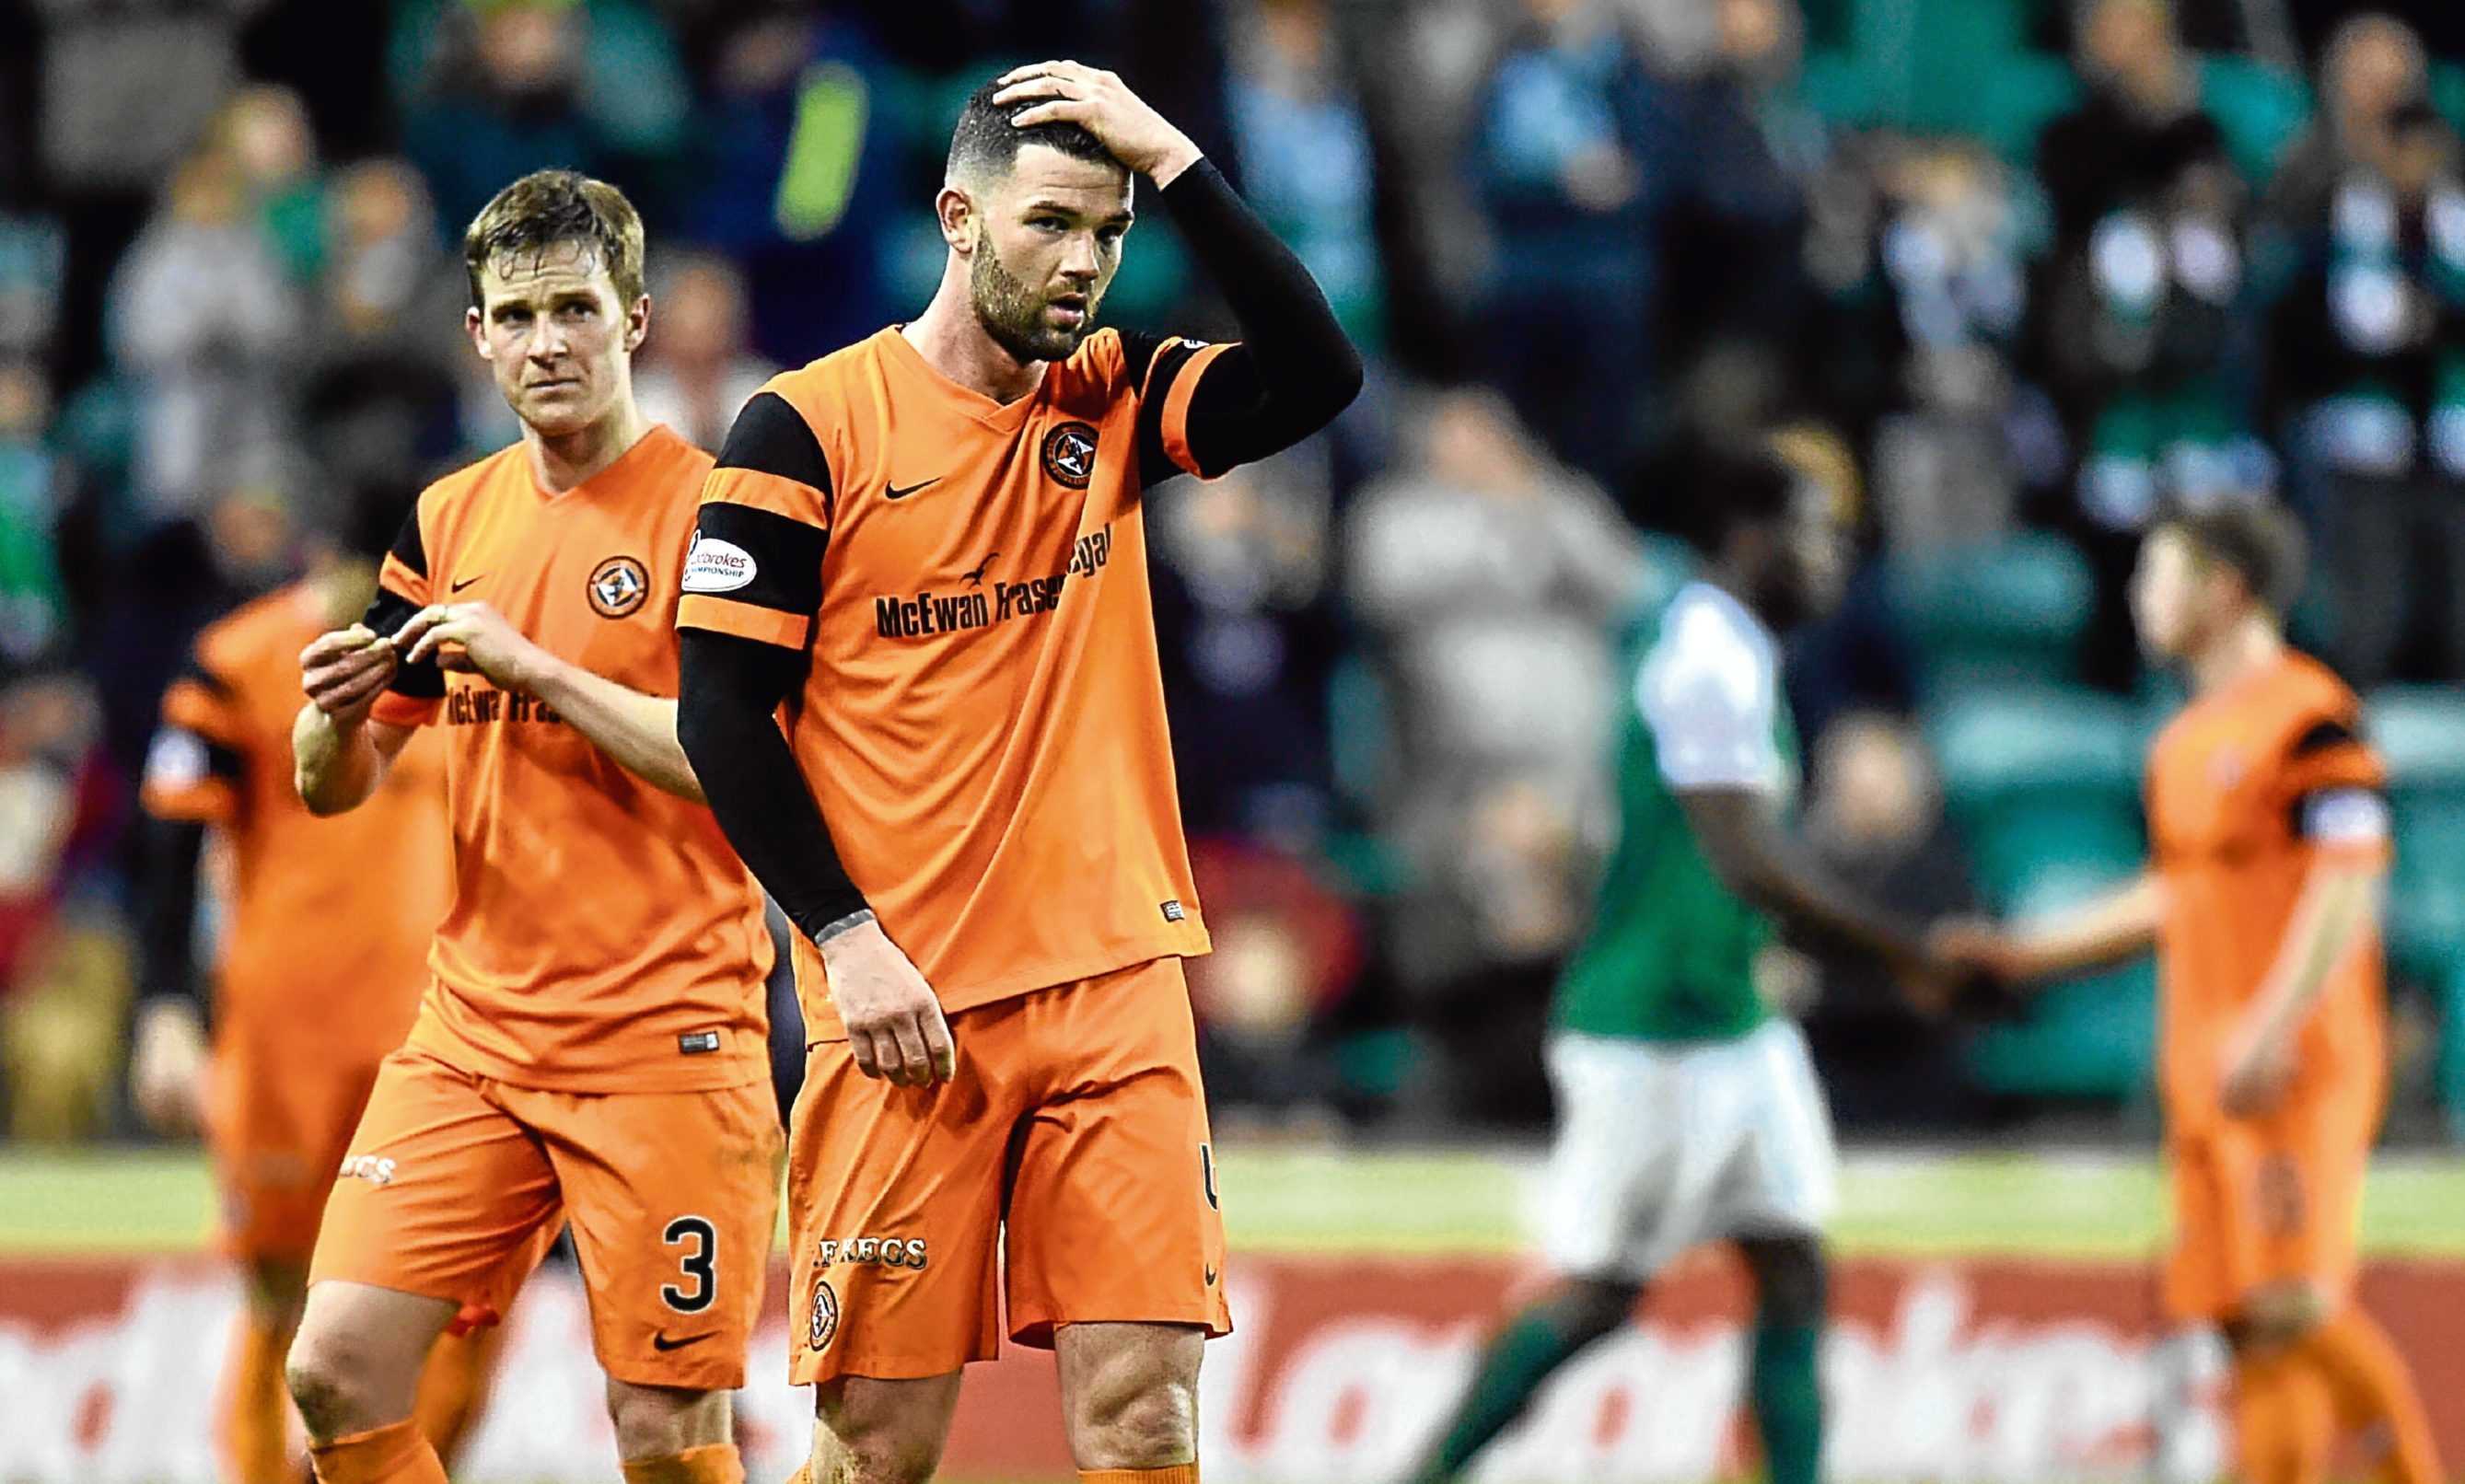 Dundee United defenders Mark Durnan and Paul Dixon trudge off at Easter Road.